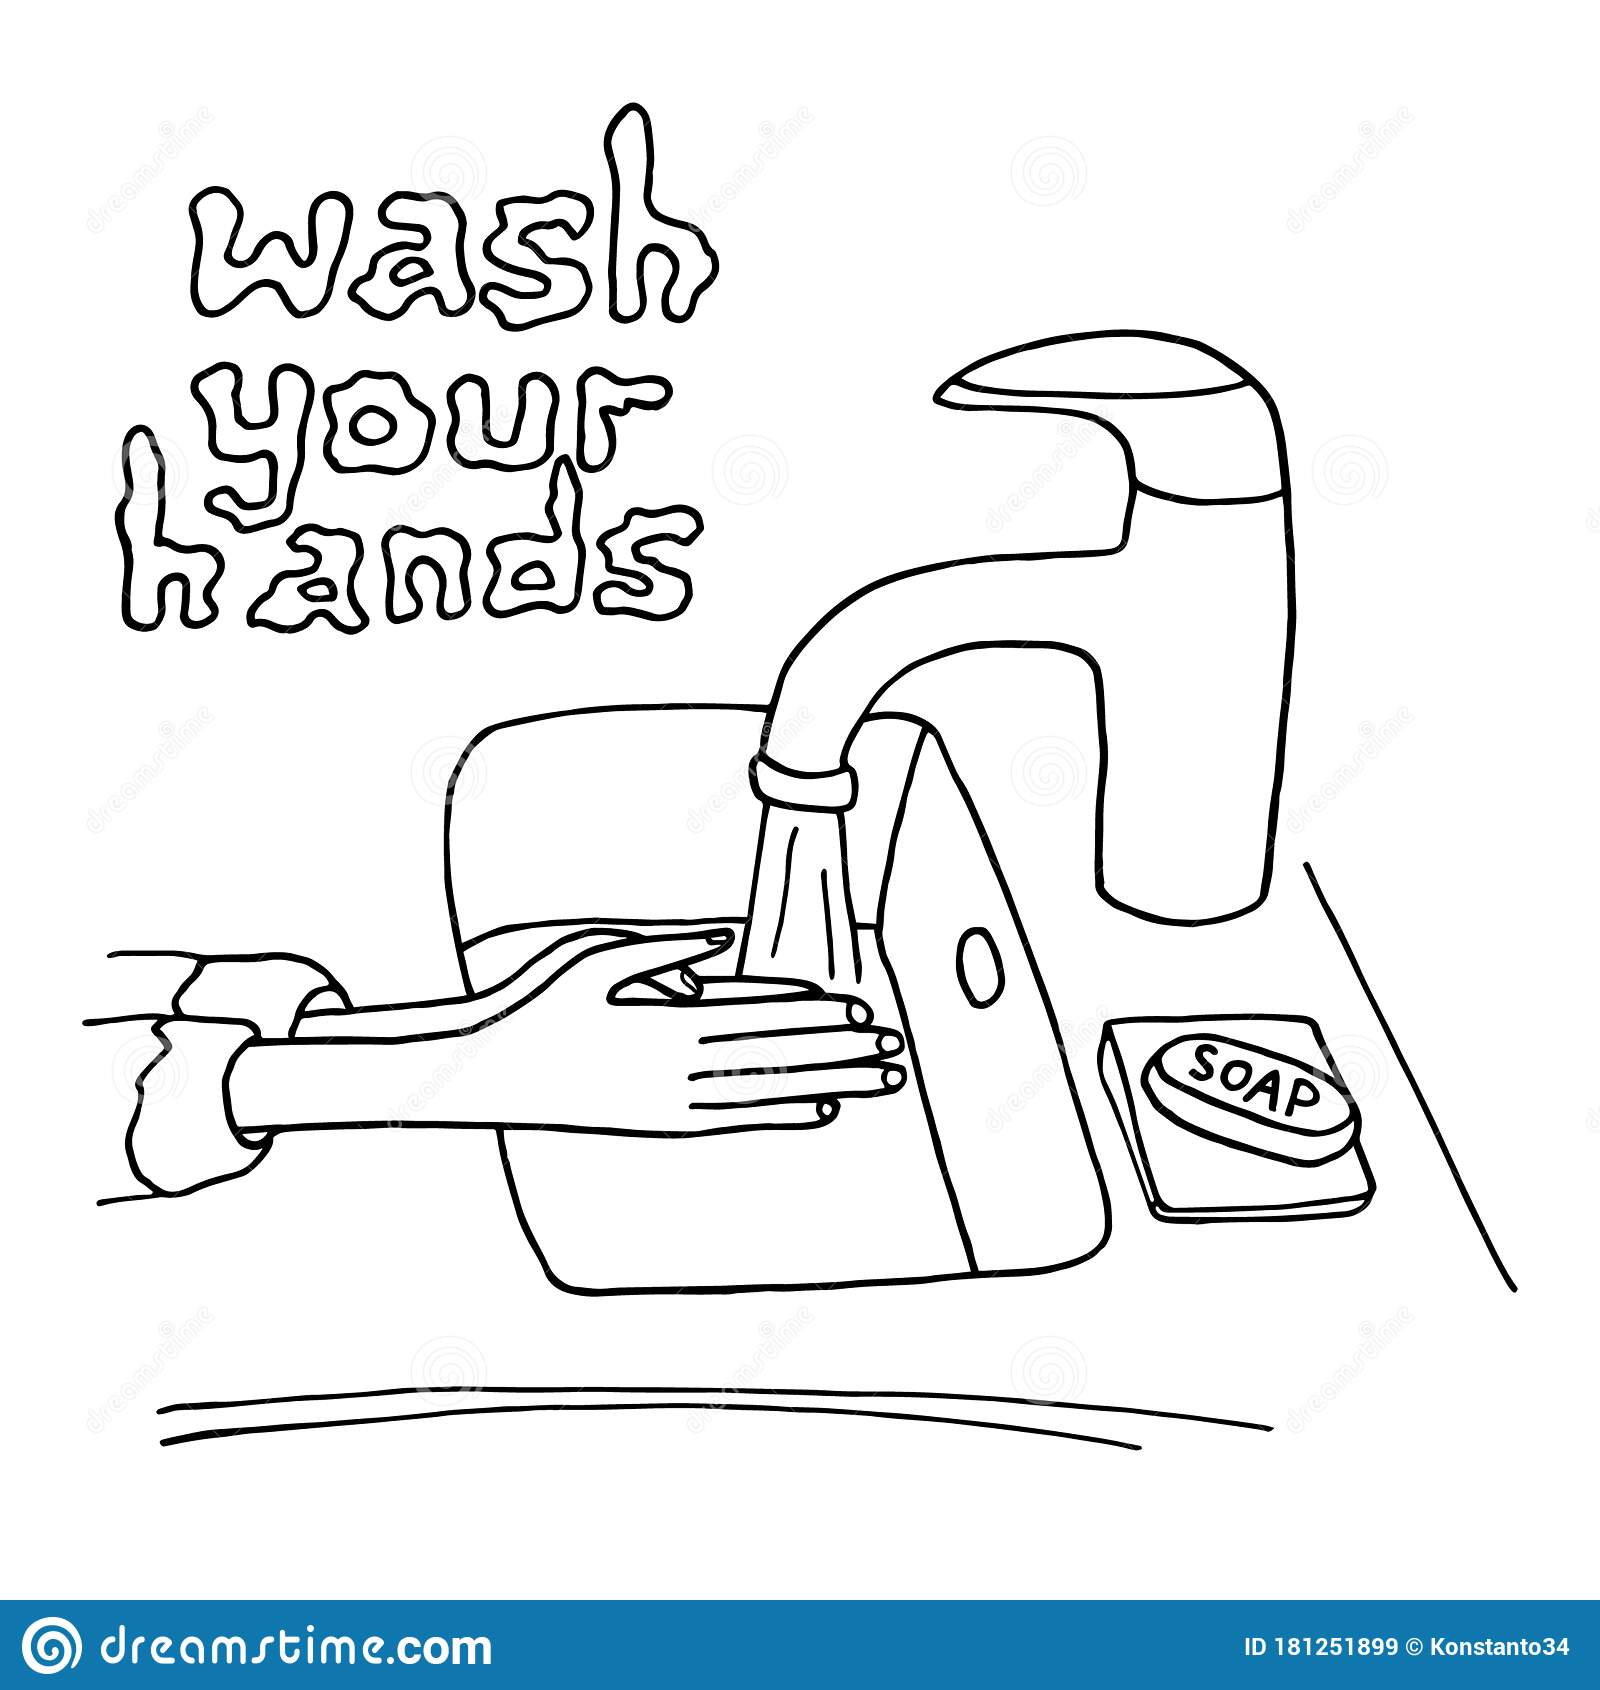 Washing Hands With Soap Vector Illustration Outline Hands